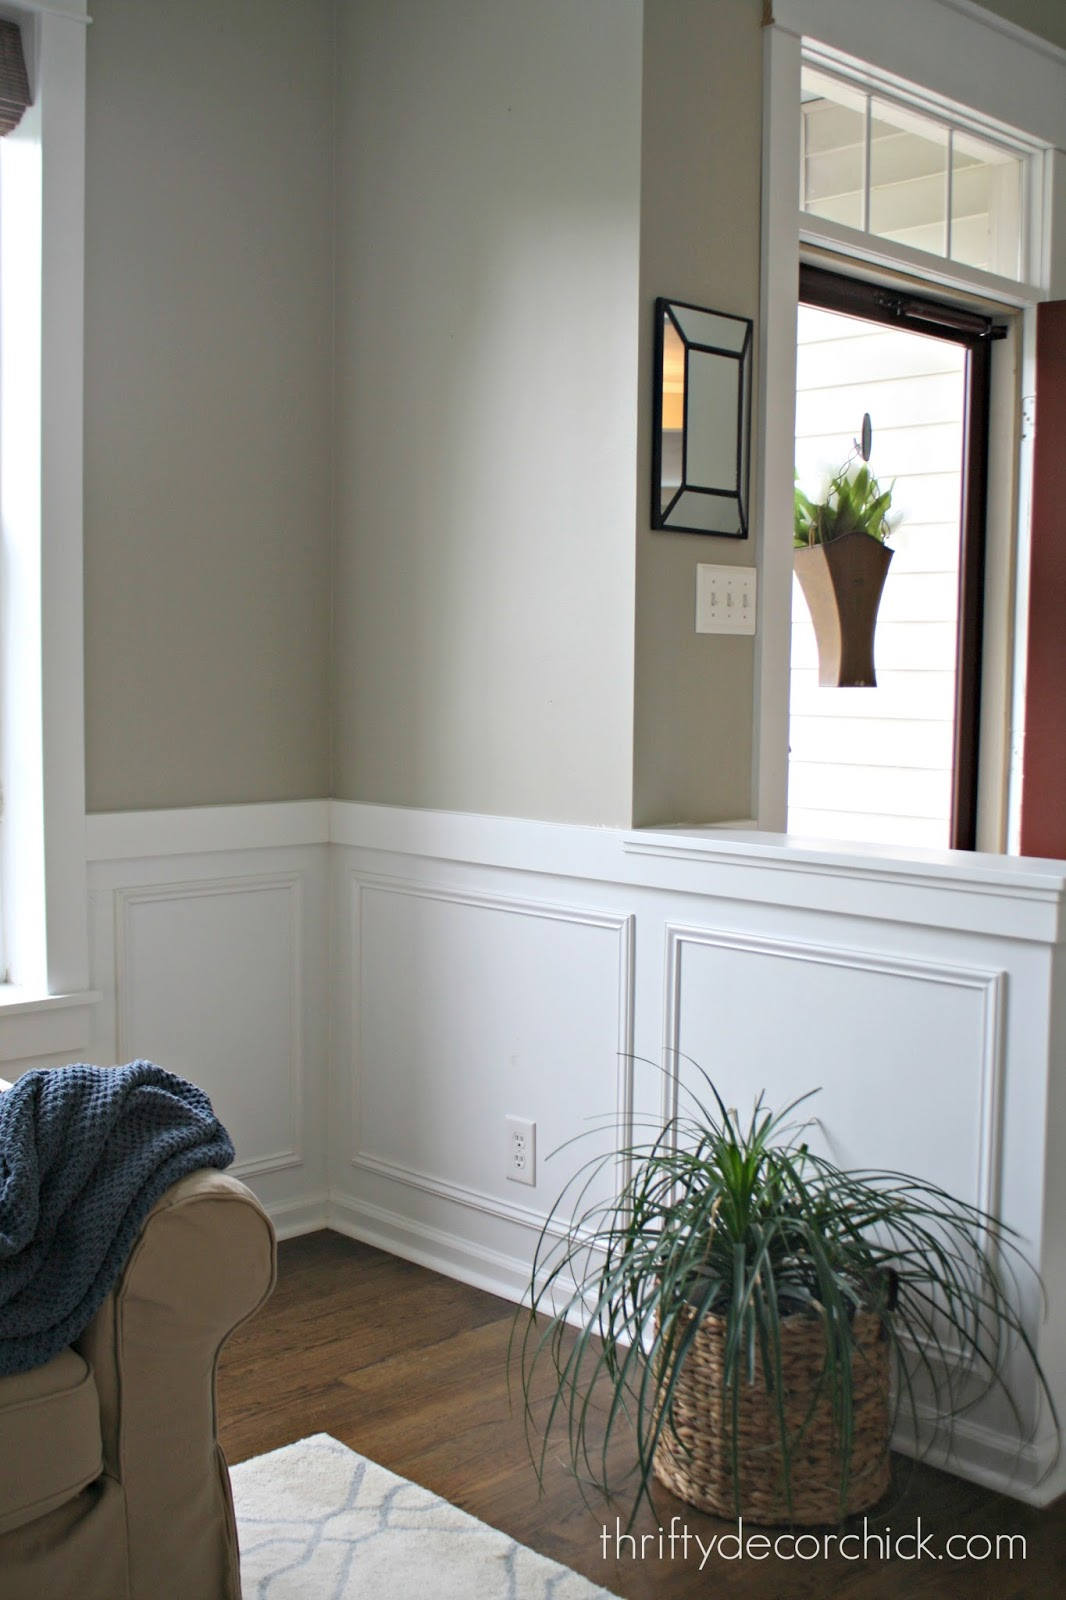 Half wall bookcase from thrifty decor chick square molding on walls amipublicfo Image collections